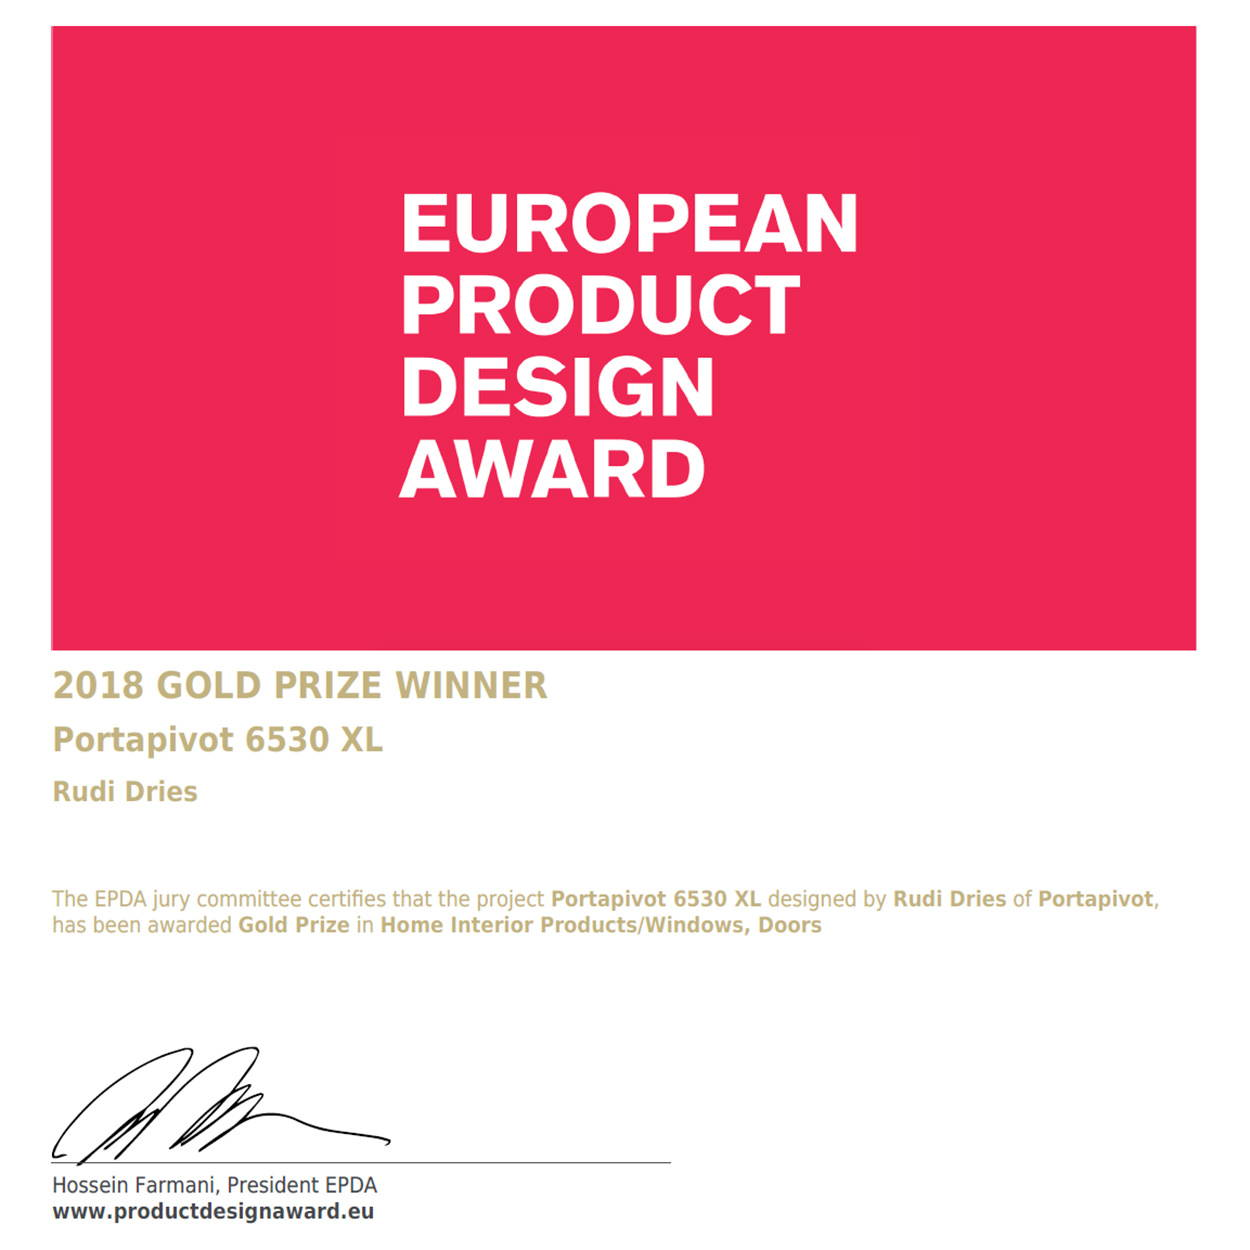 Portapivot European product design award 2018 gold prize winner certificate